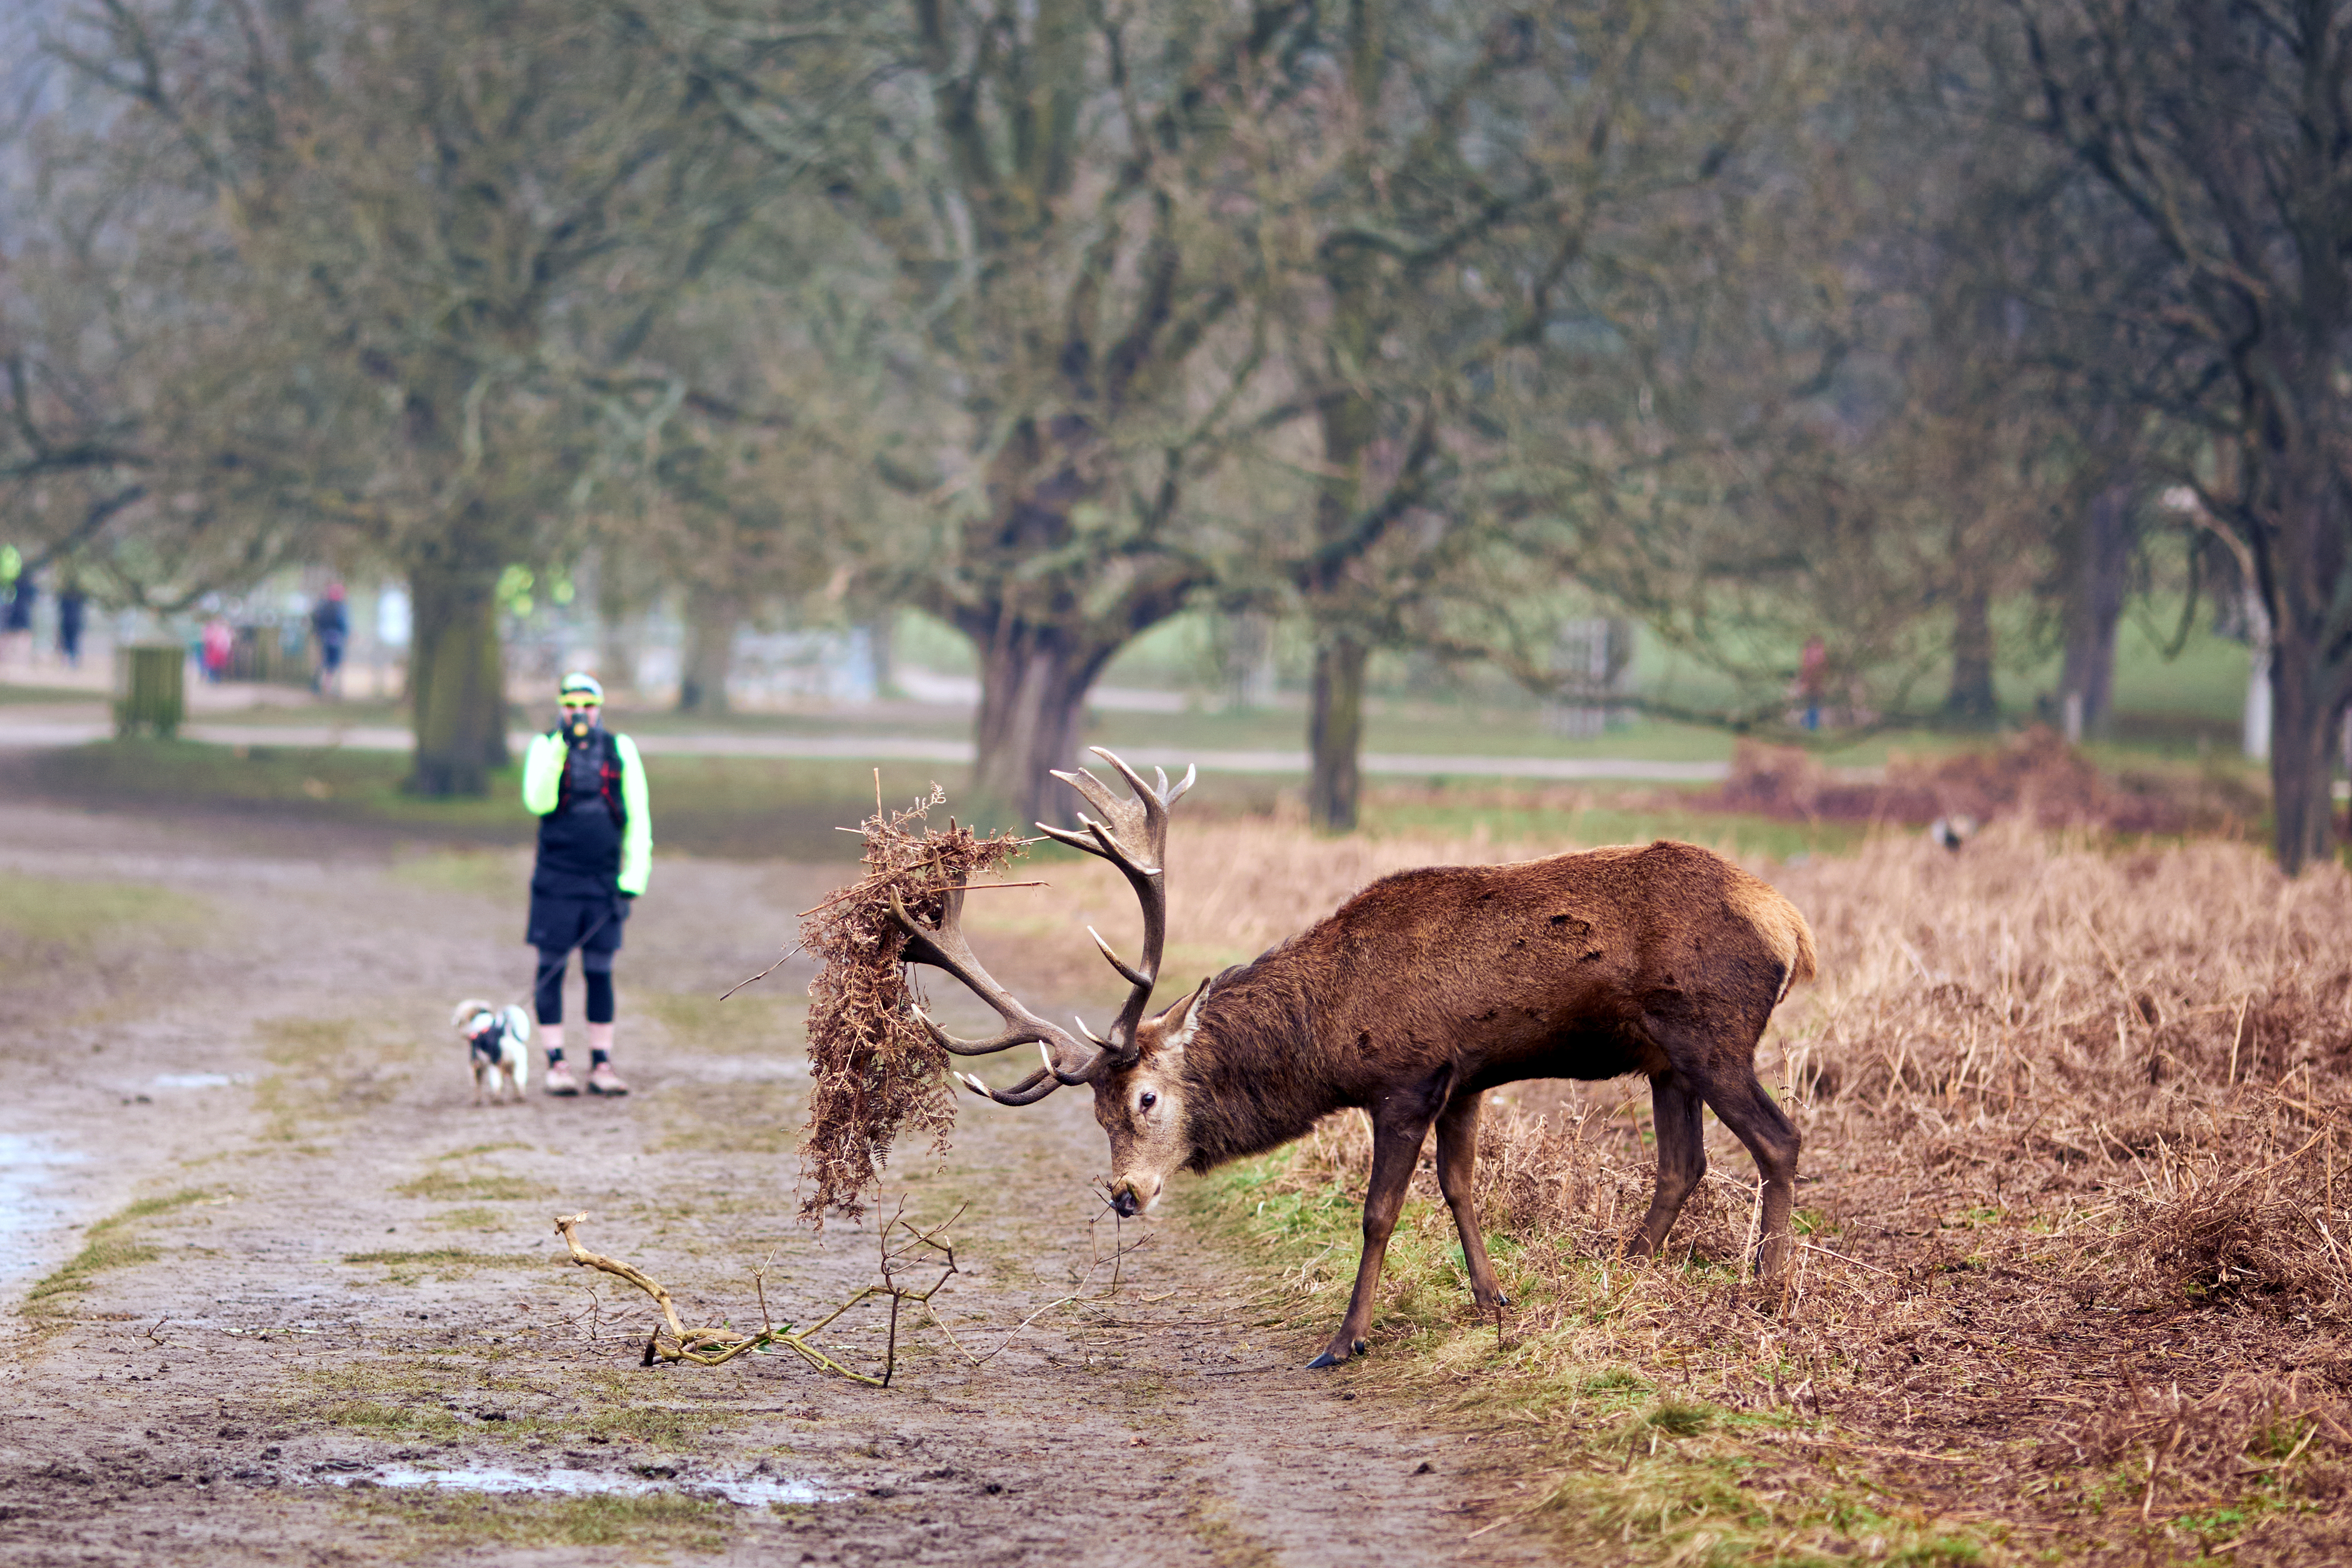 Red deer in Richmond Park, London. (Photo by John Walton/PA Images via Getty Images)